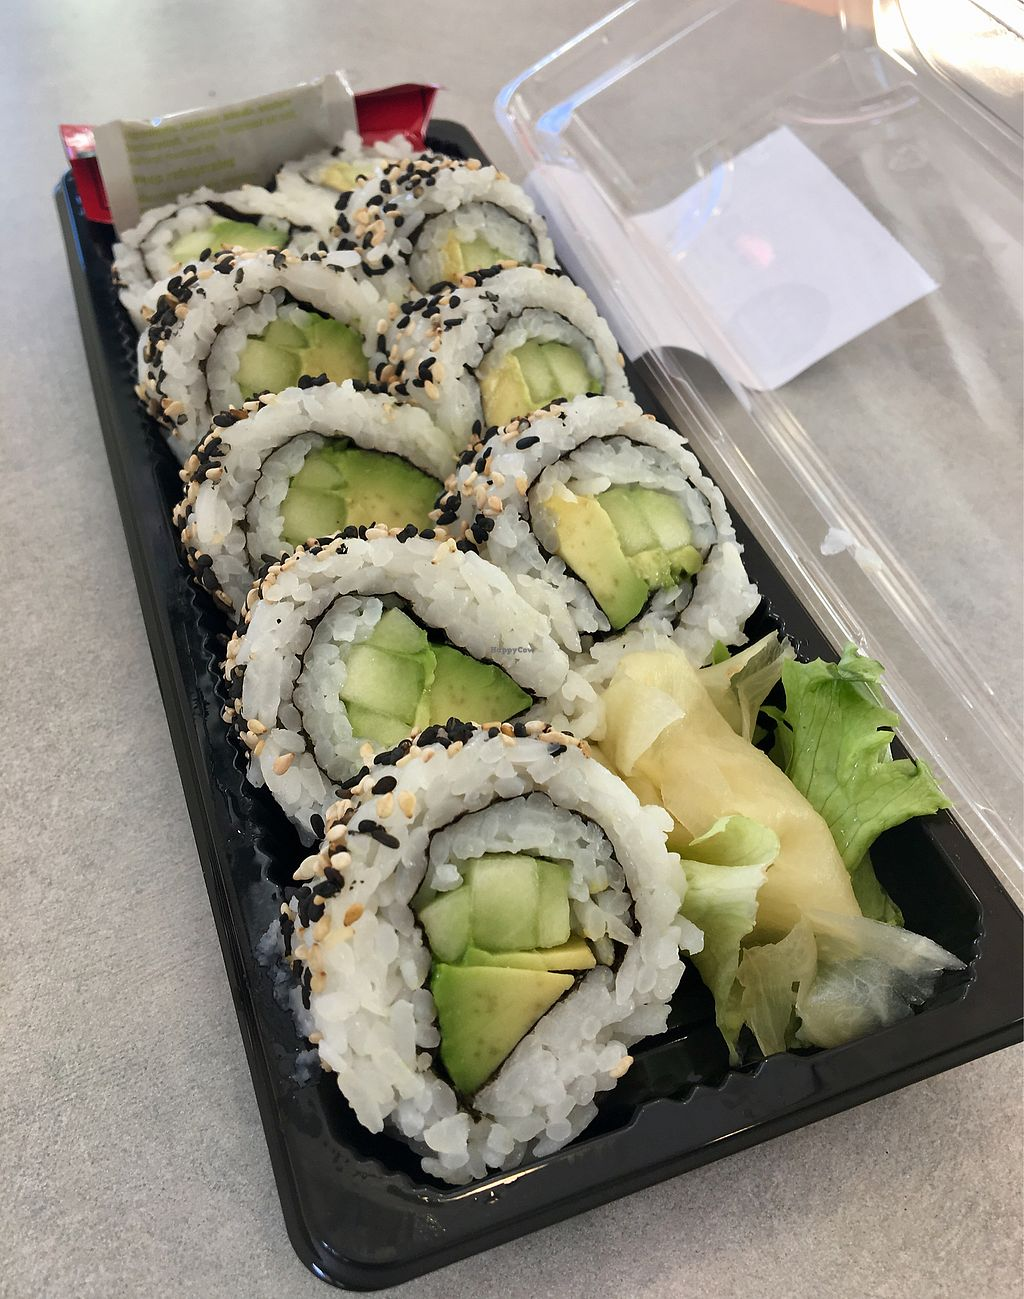 """Photo of Whole Foods Market  by <a href=""""/members/profile/Clean%26Green"""">Clean&Green</a> <br/>Avocado cucumber sushi roll  <br/> January 22, 2018  - <a href='/contact/abuse/image/3037/349903'>Report</a>"""